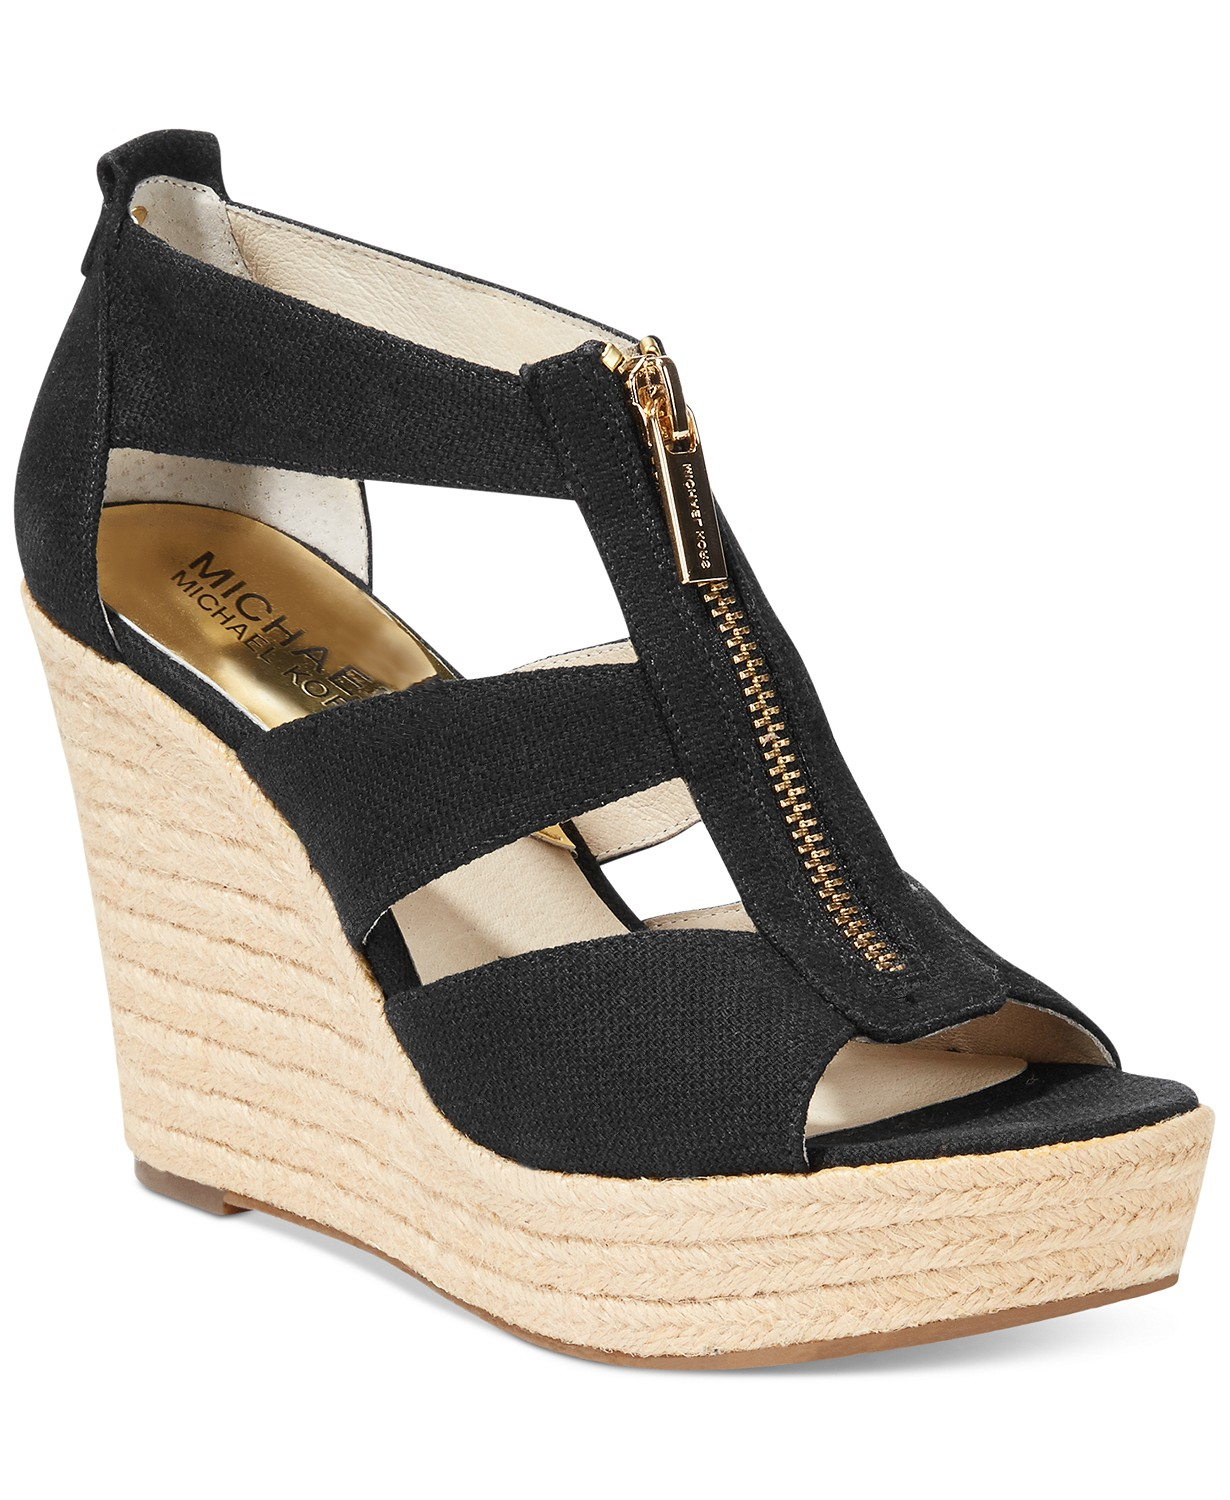 Favorite Wedges - Motherhood Charm